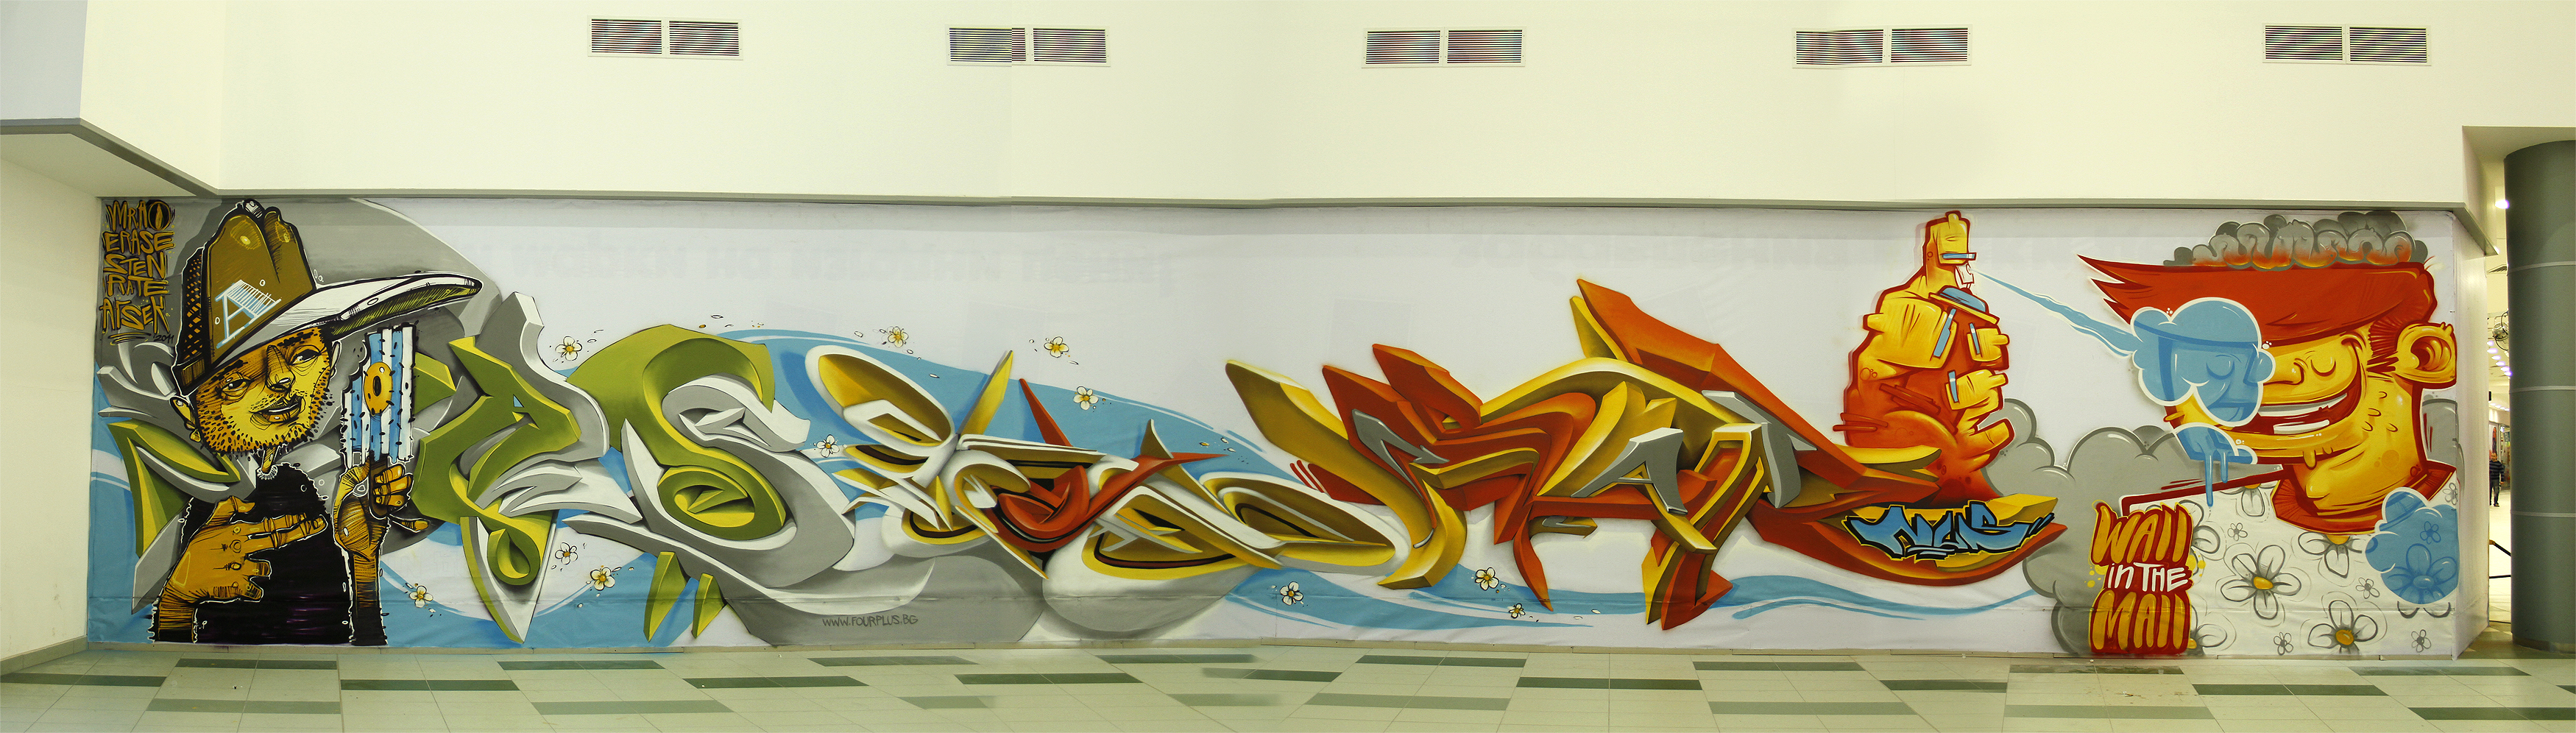 Wall in the Mall by szc